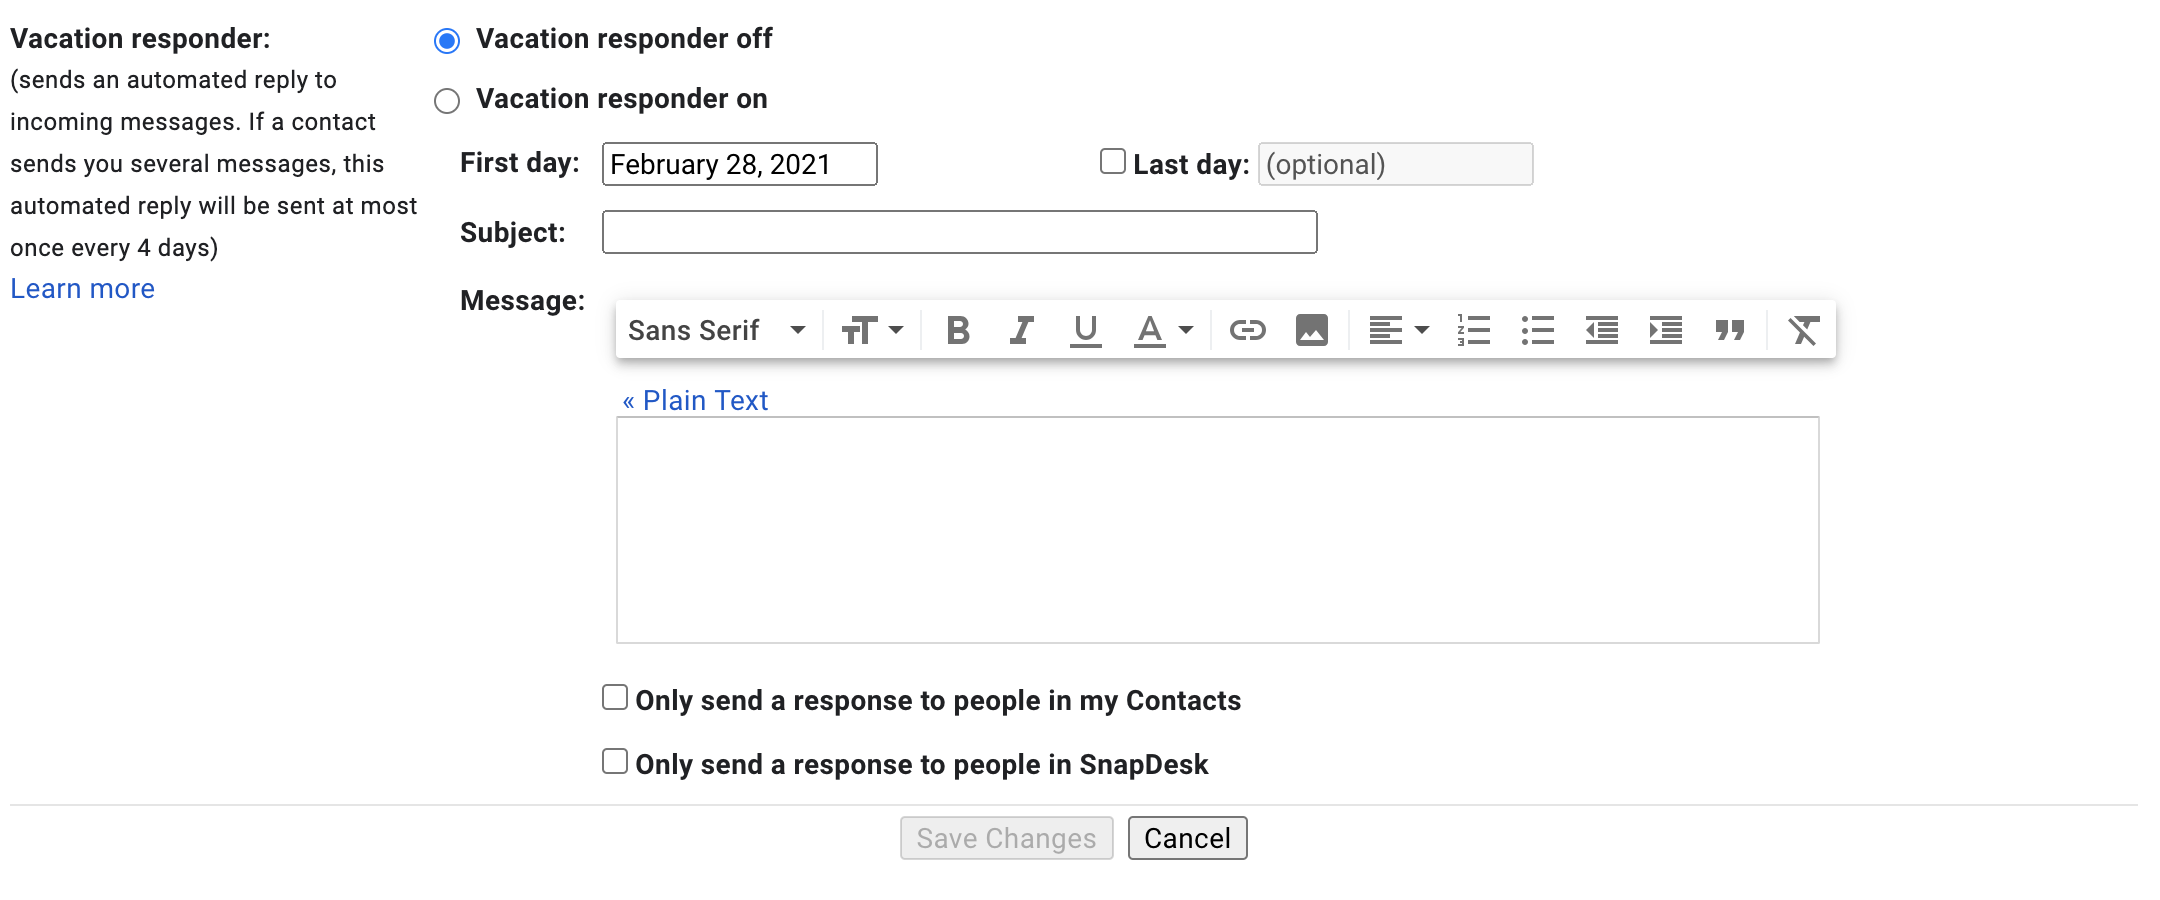 Gmail Out of Office Message Vacation Responder